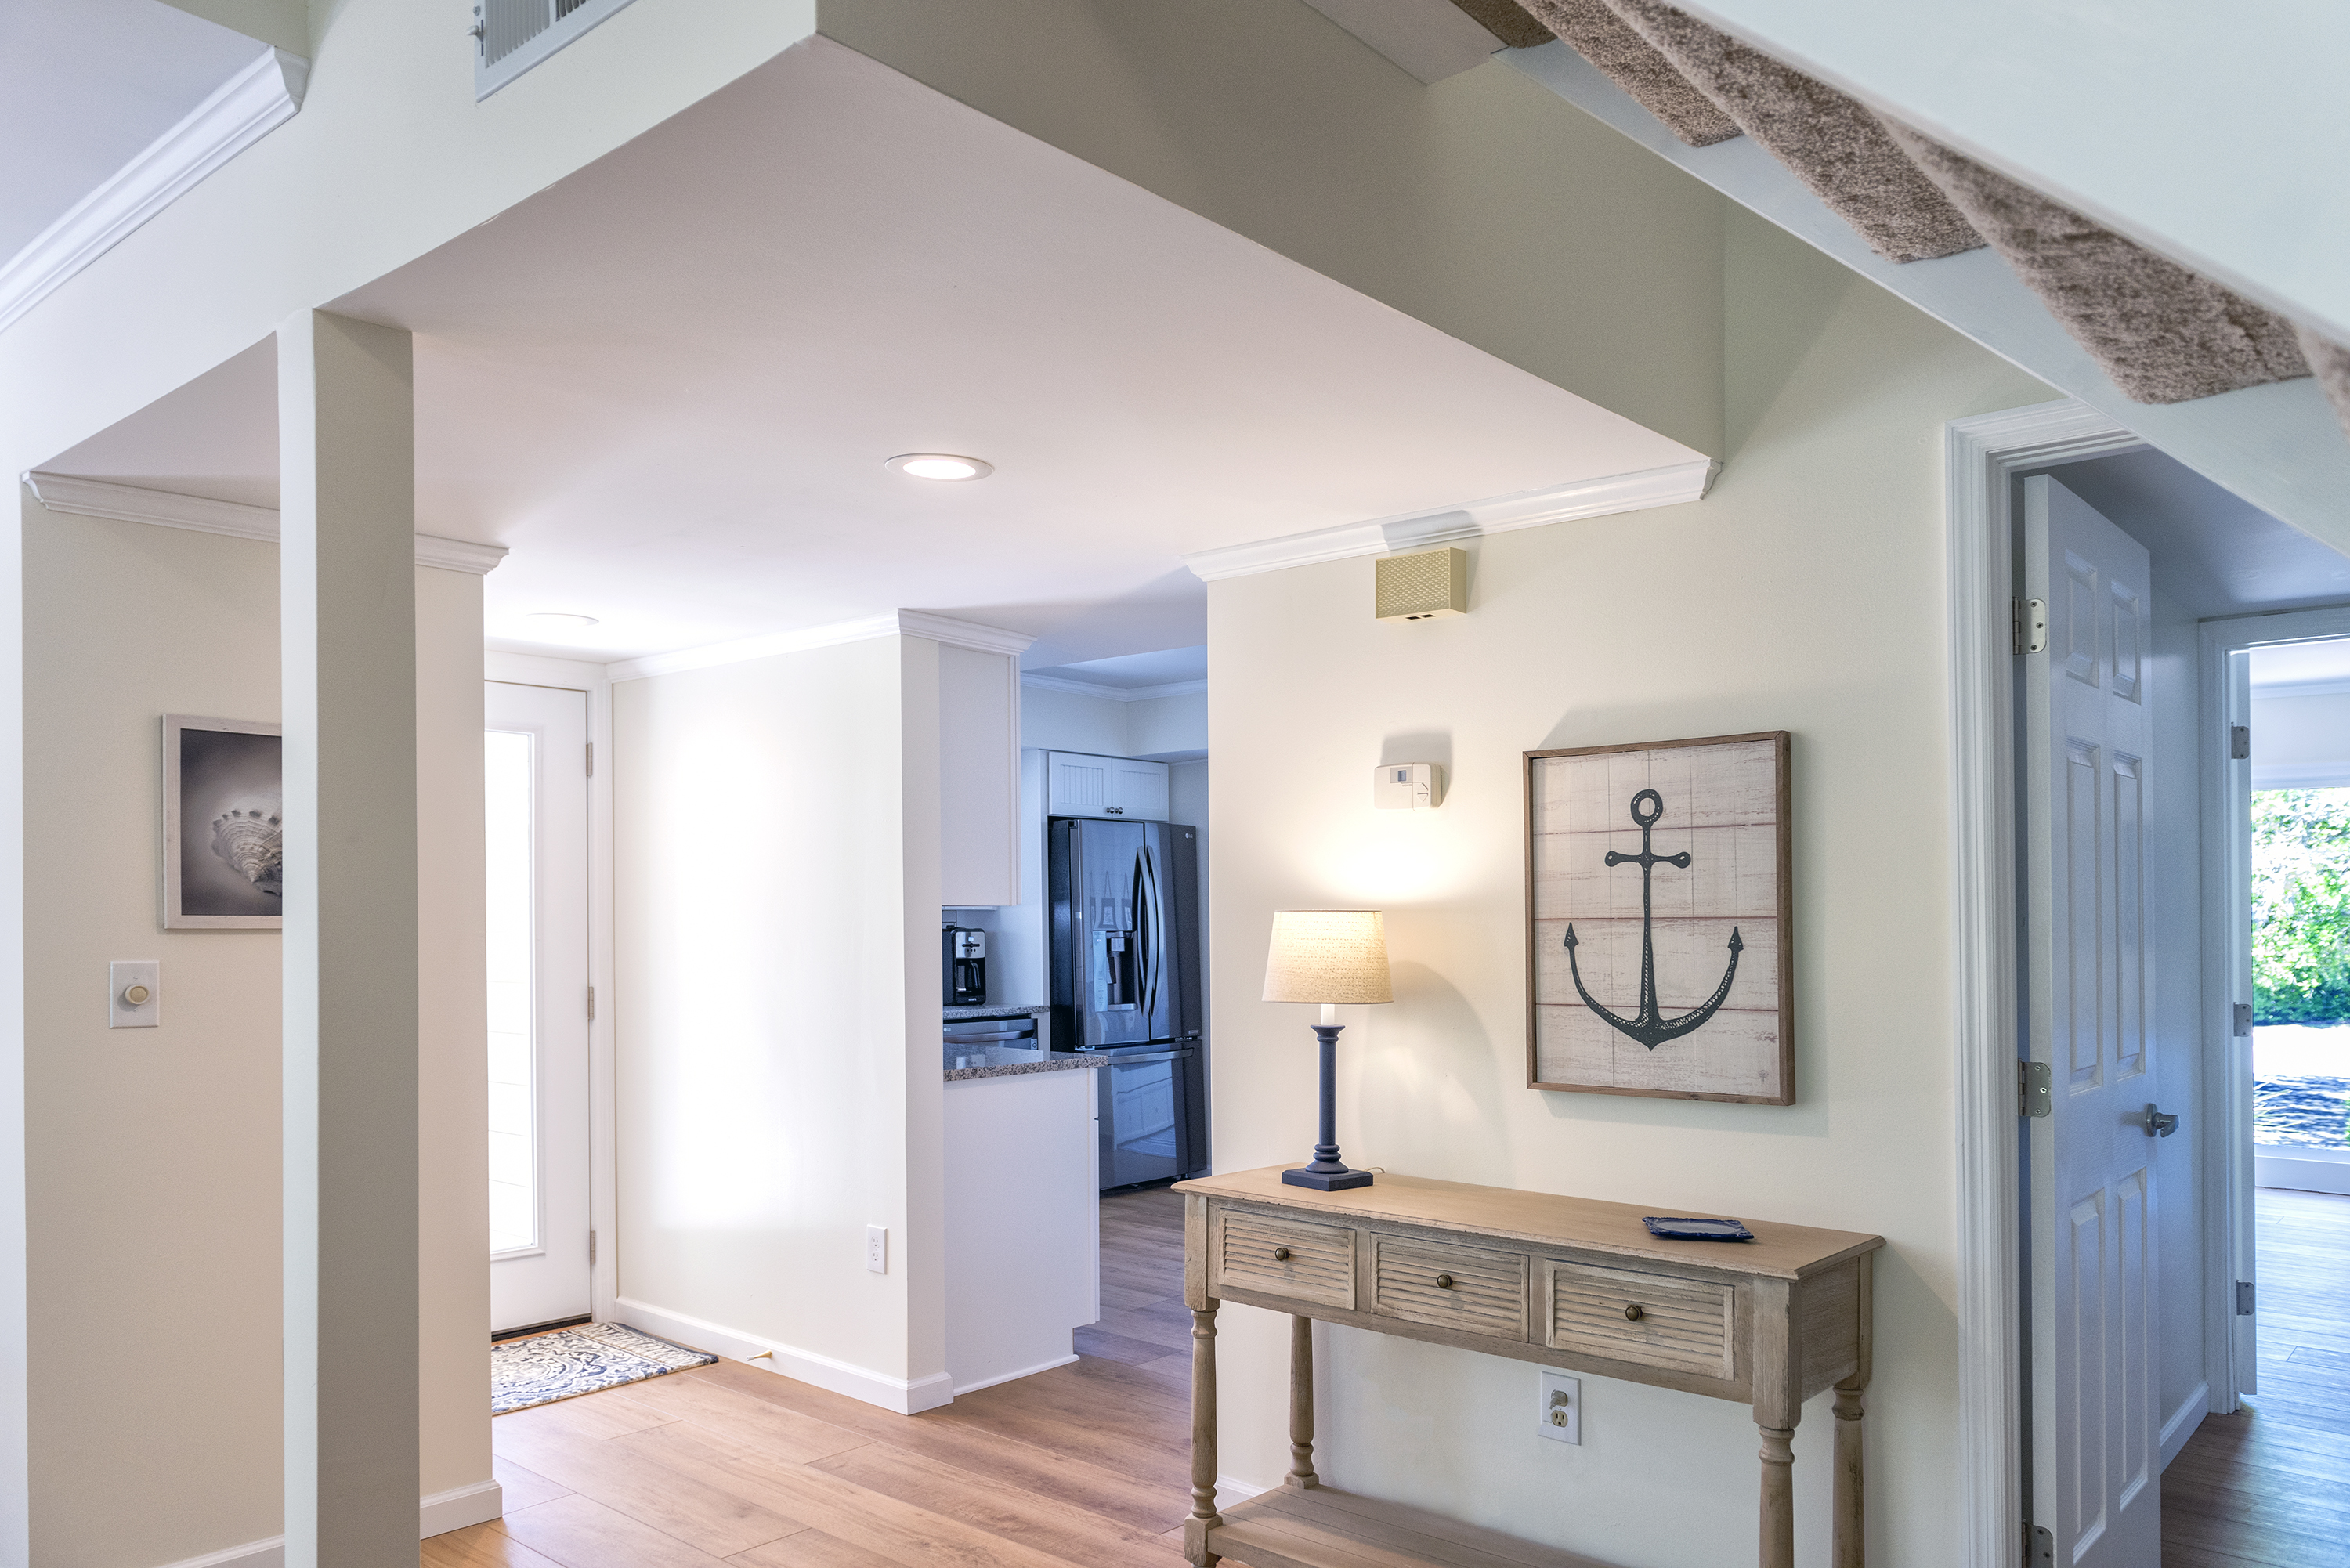 Hardwood floors and a neutral paint tone fill this beach home.